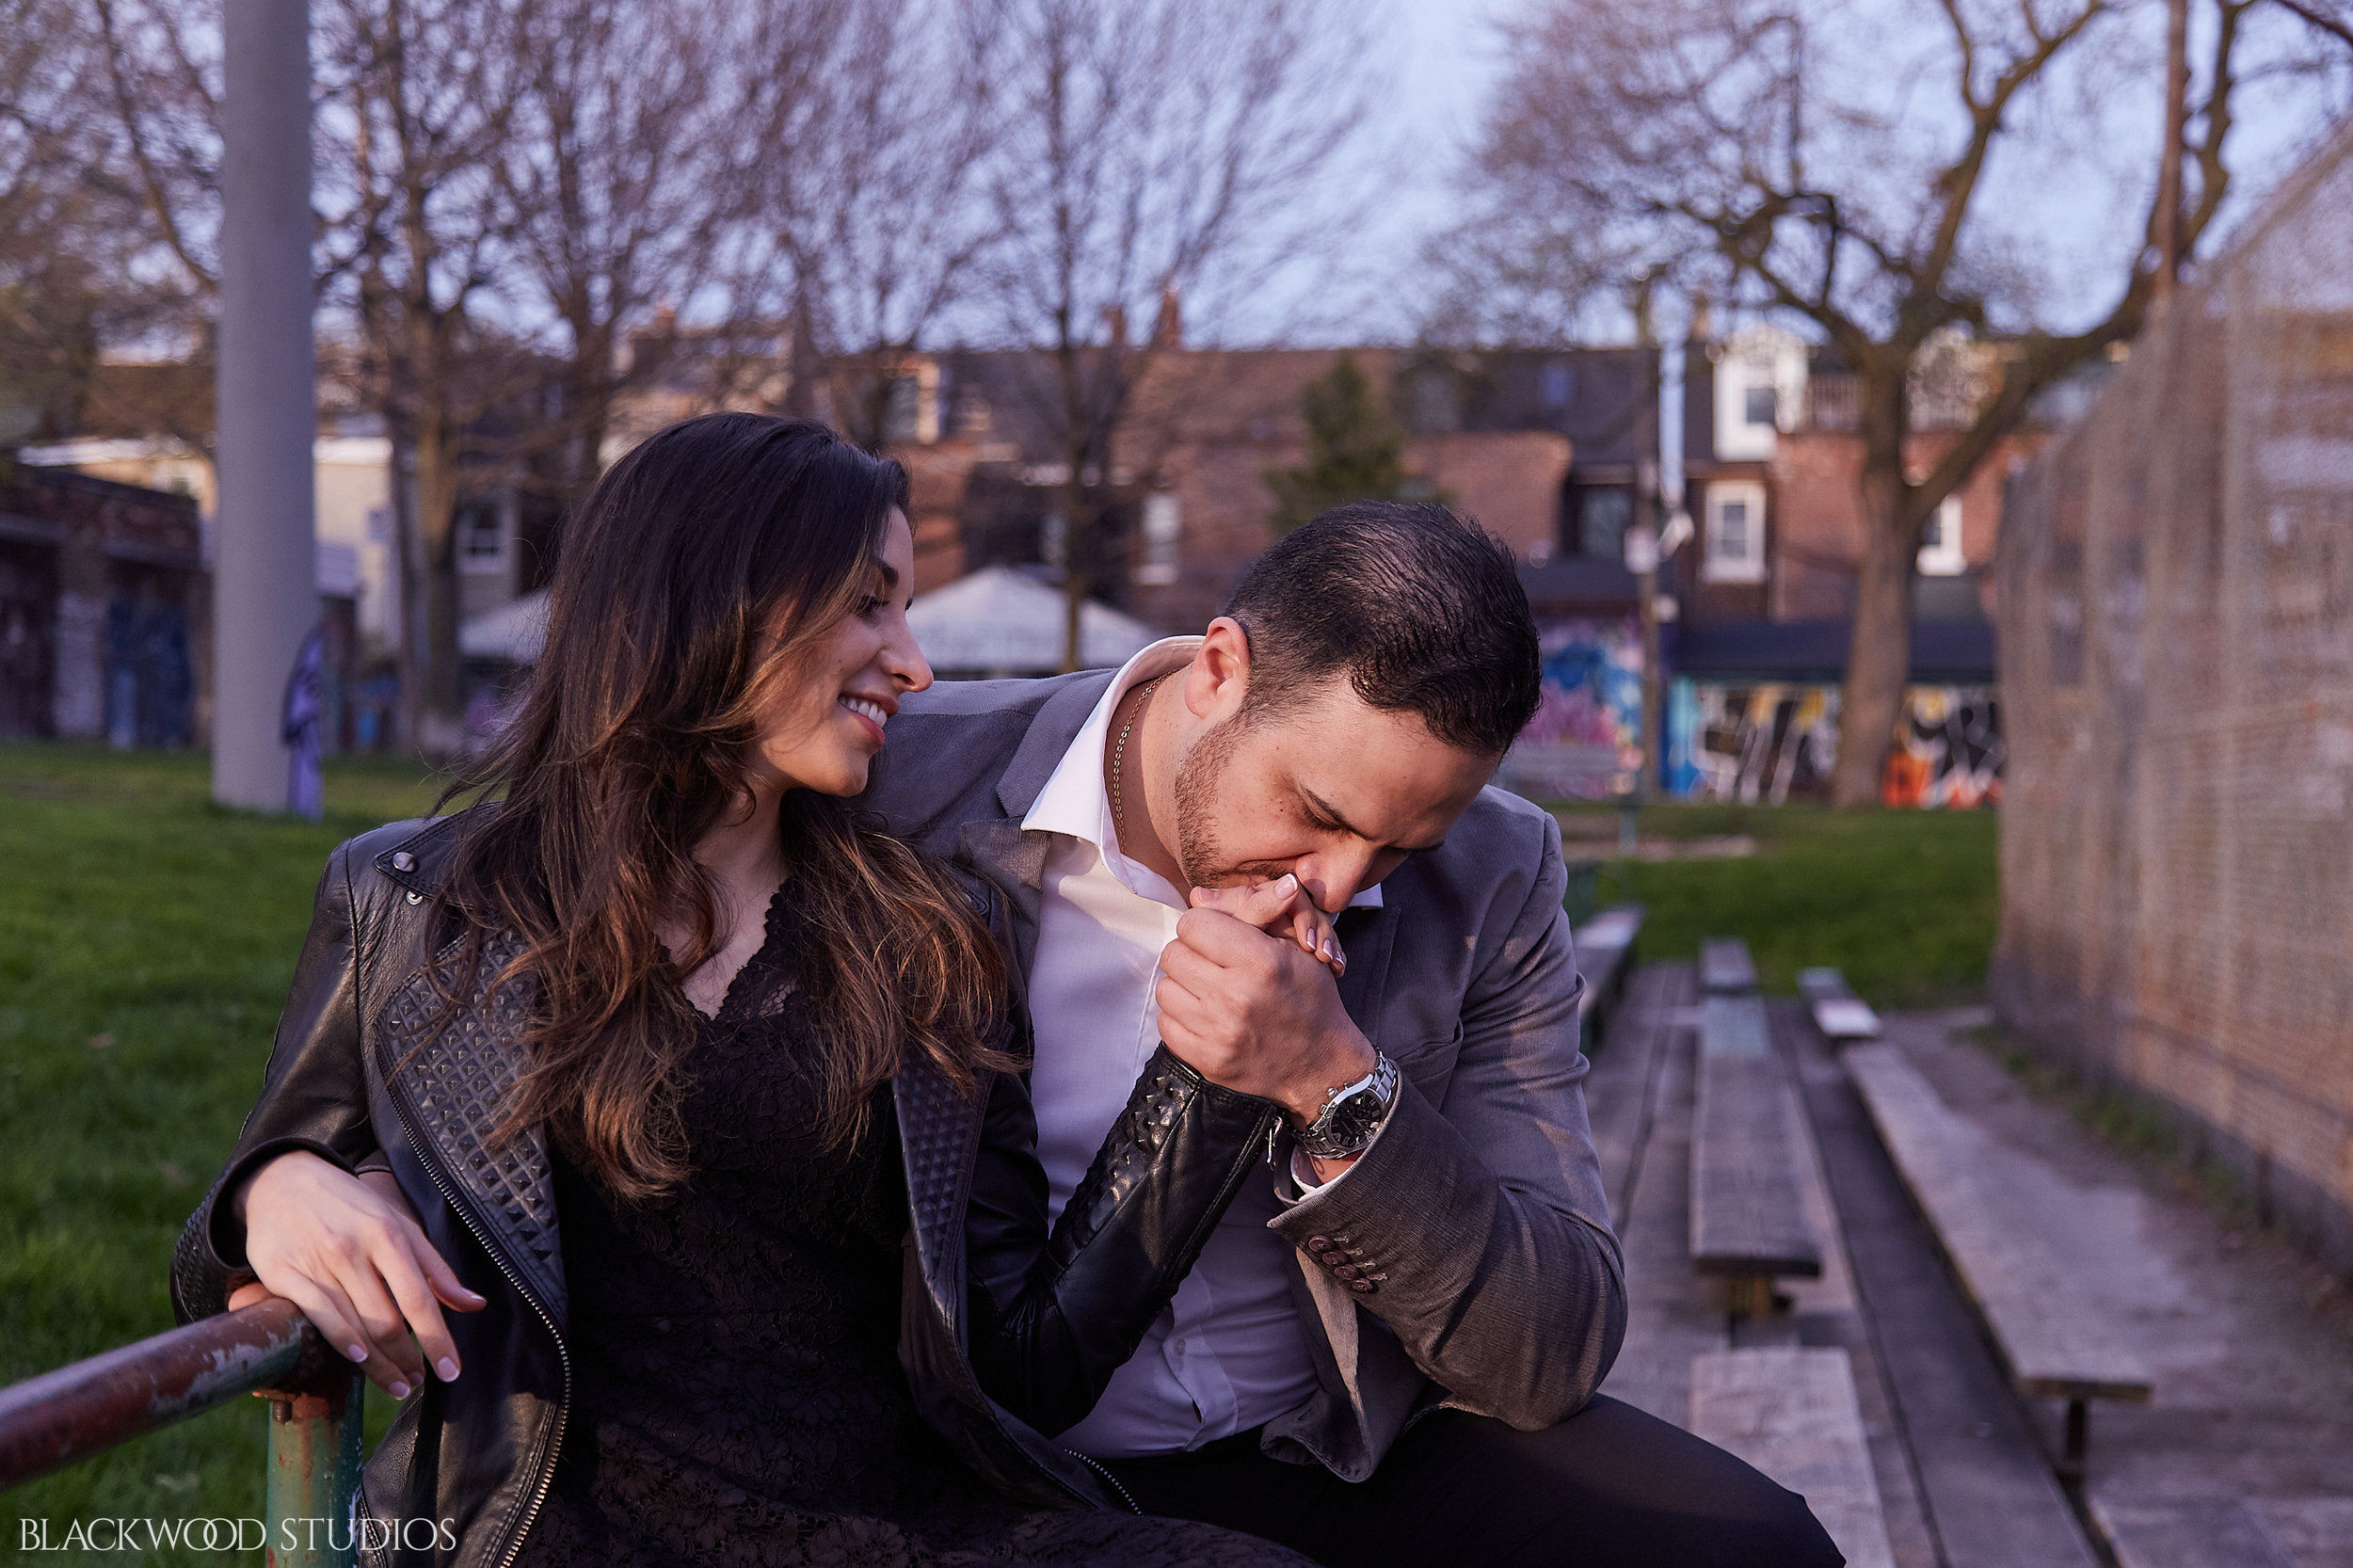 Blackwood-Studios-20190504194020-Rosalia-and-Paul-Engagement-Photography-Trinity-Bellwoods-Toronto-Ontario-Canada.jpg